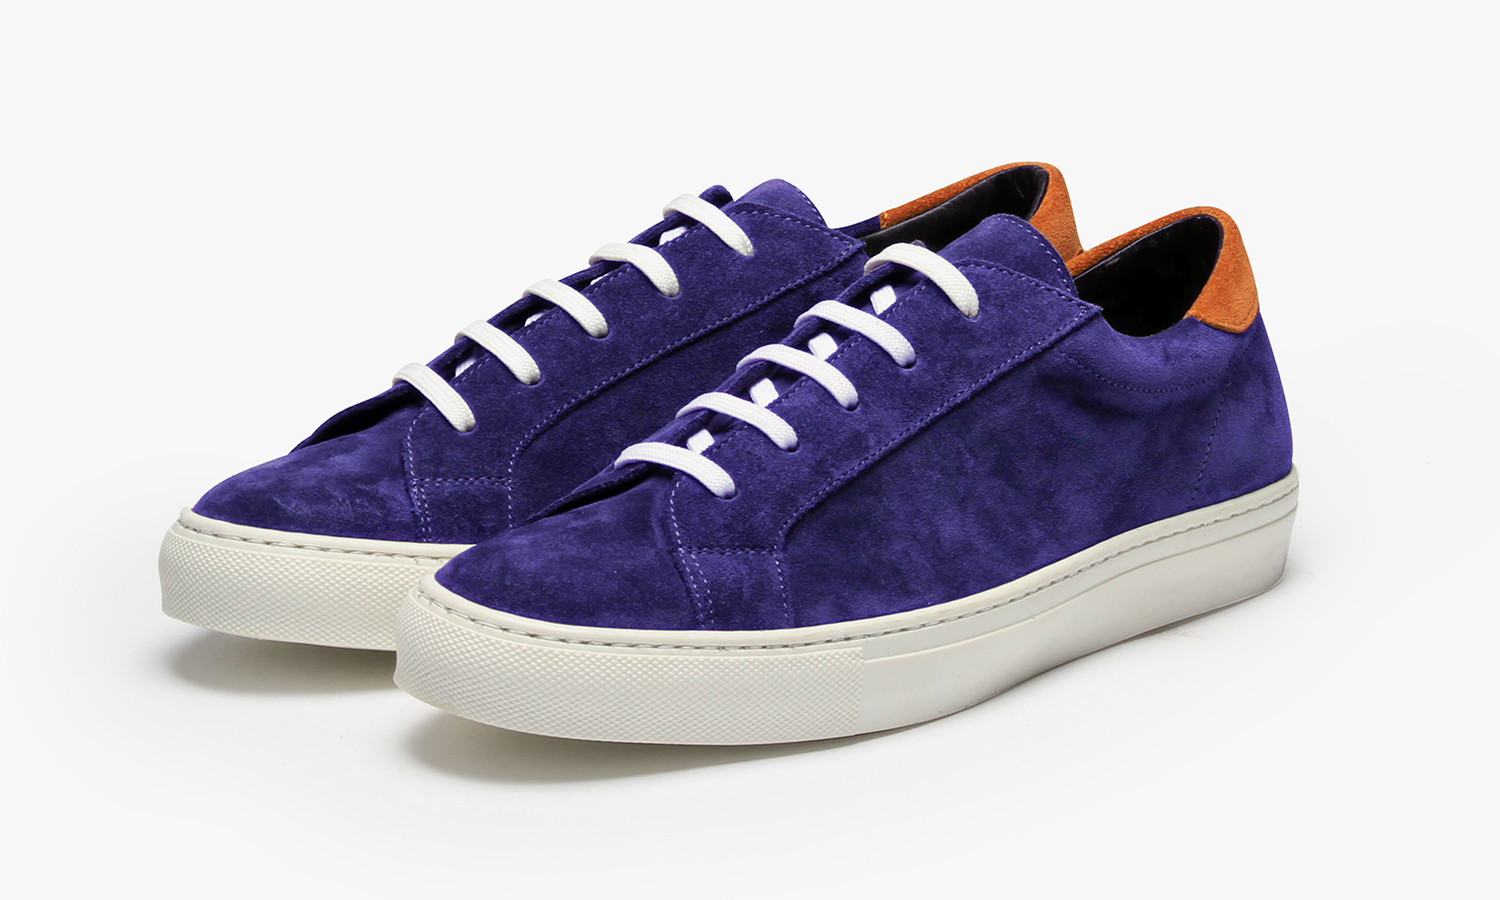 Colorful Sneakers from Tim Little Spring 2015